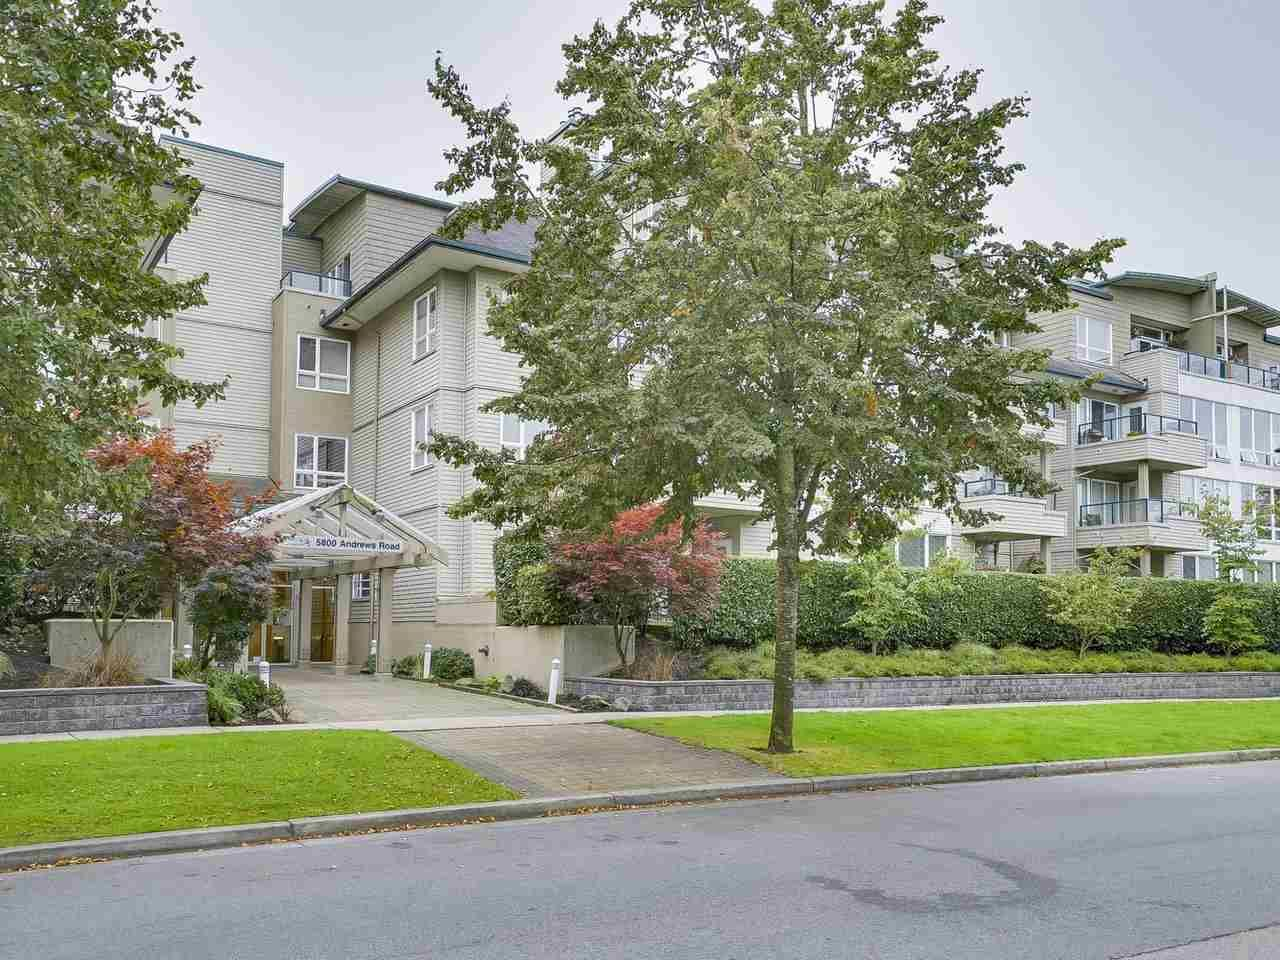 Main Photo: 108 5800 ANDREWS ROAD in : Steveston South Condo for sale : MLS®# R2202832